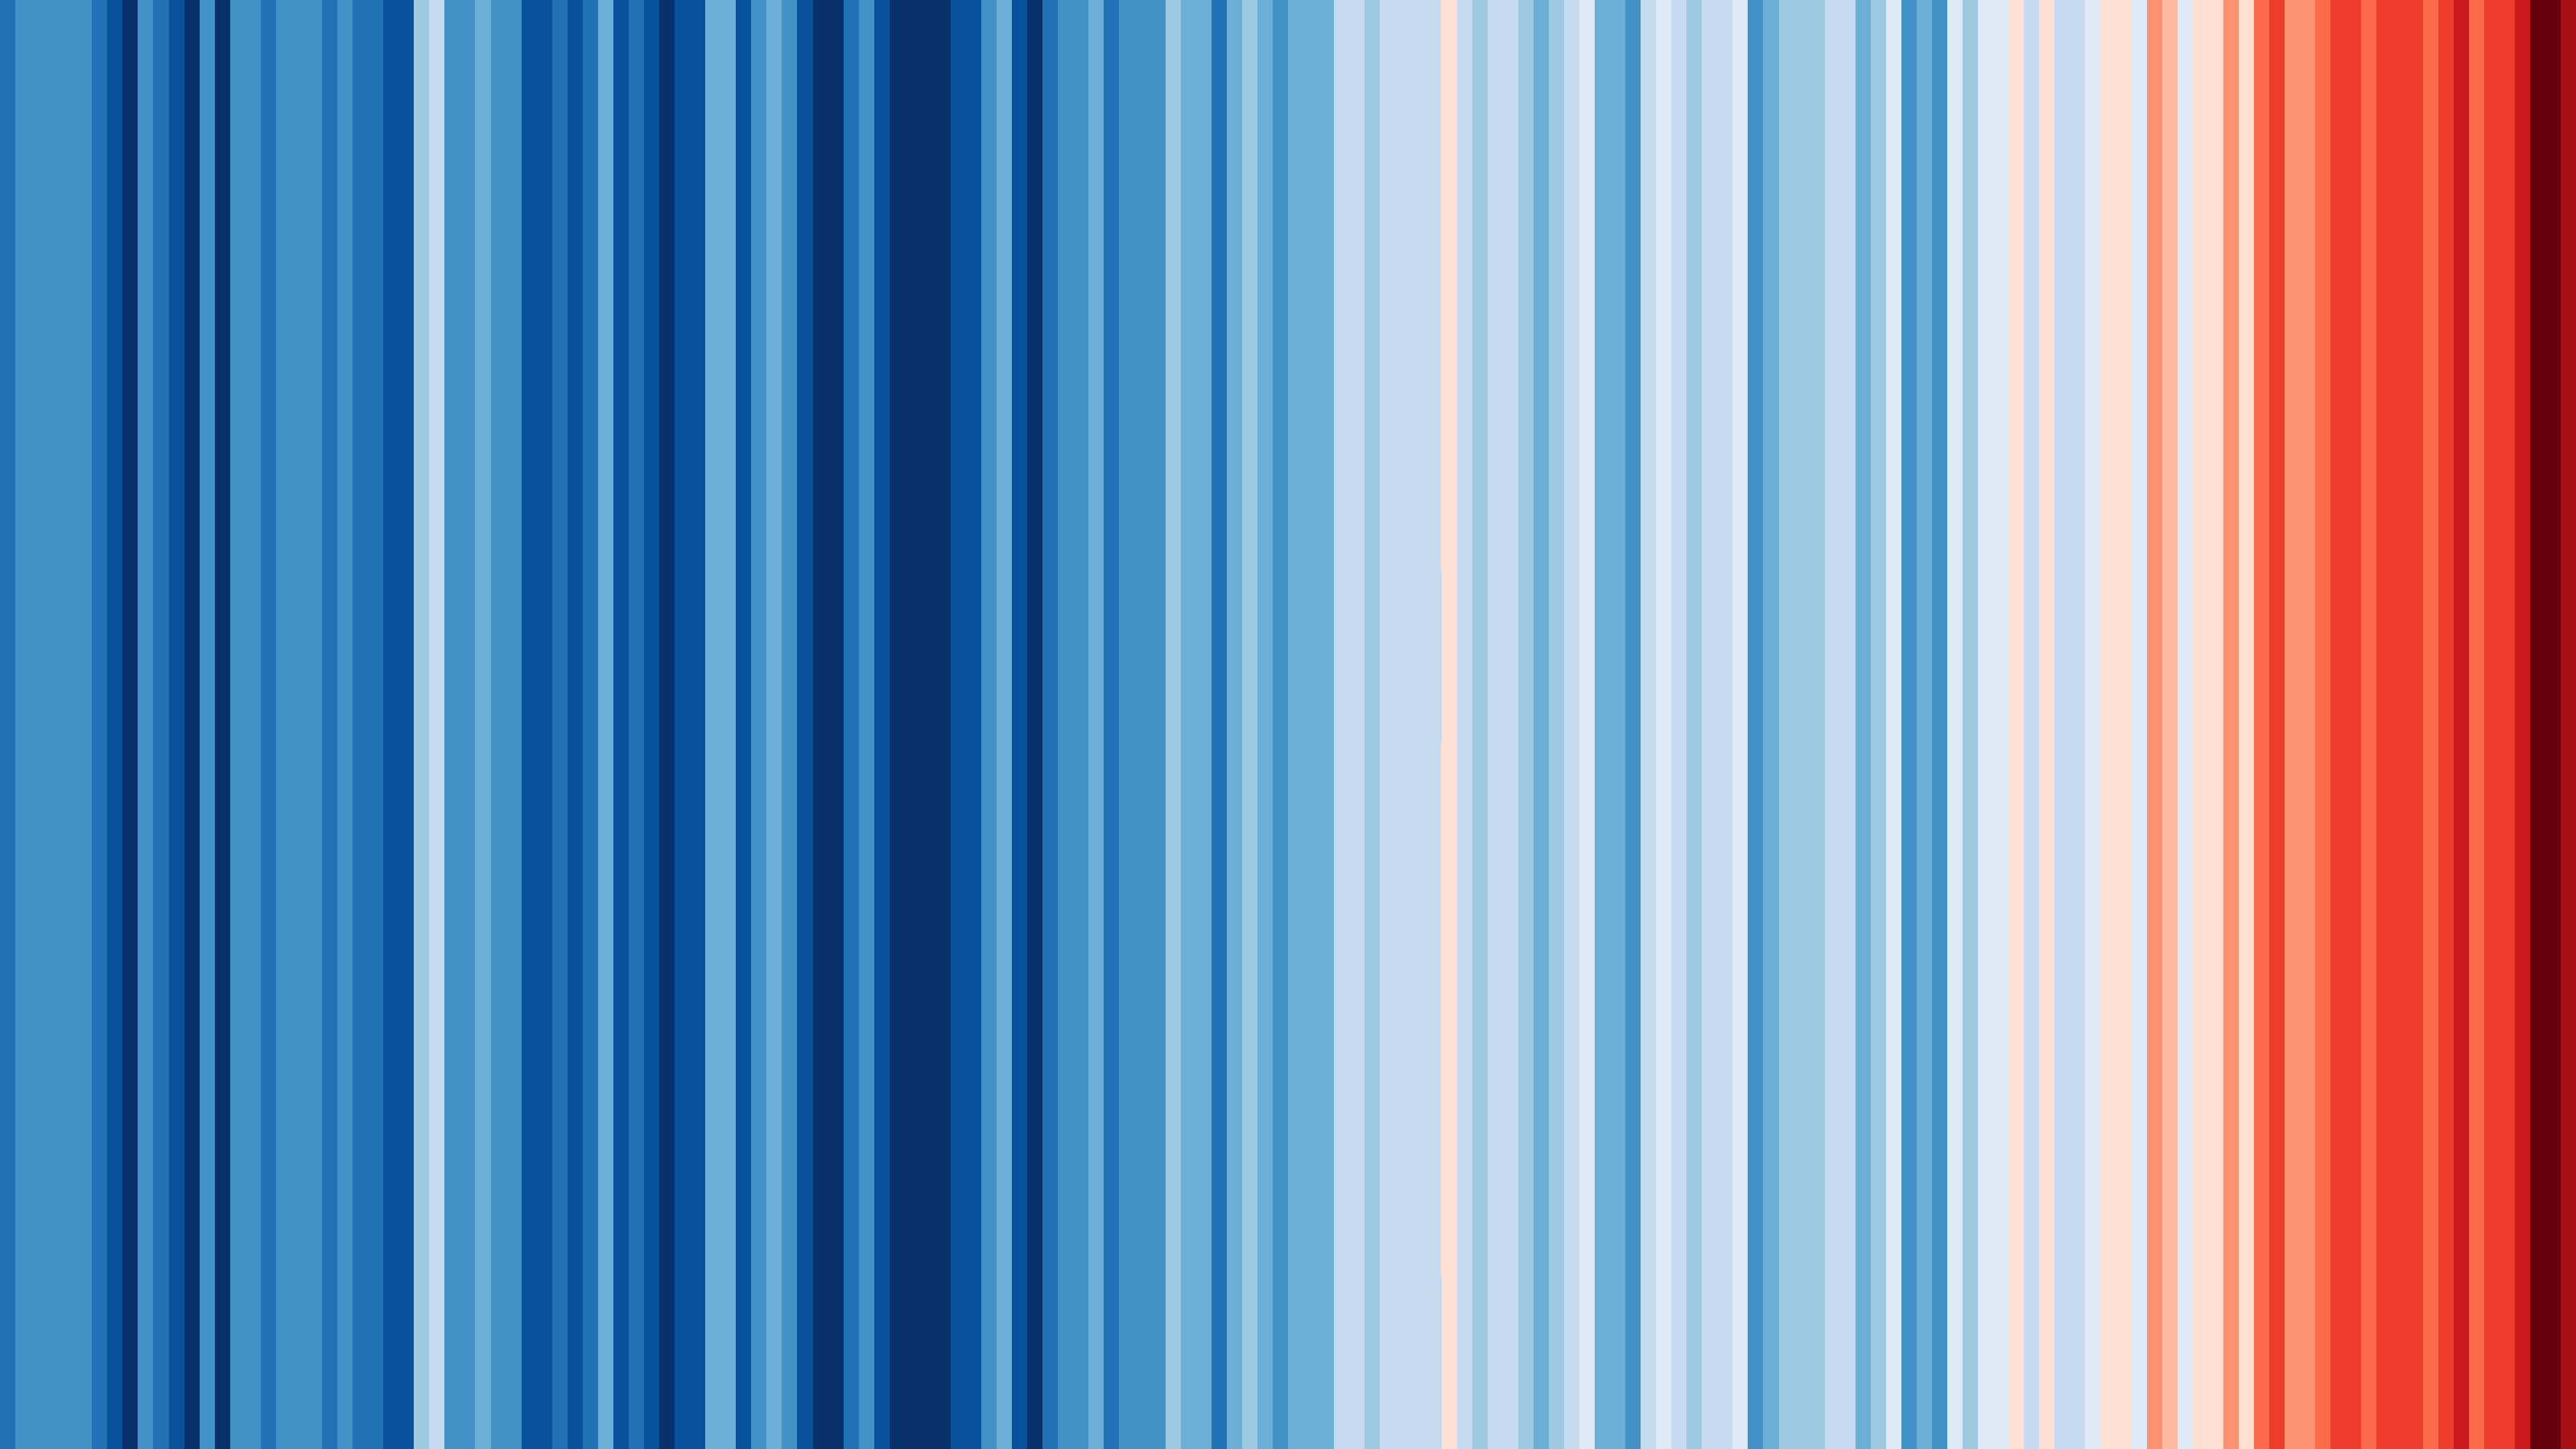 2019 Warming Stripes: How Temperatures Have Trended in Your Region